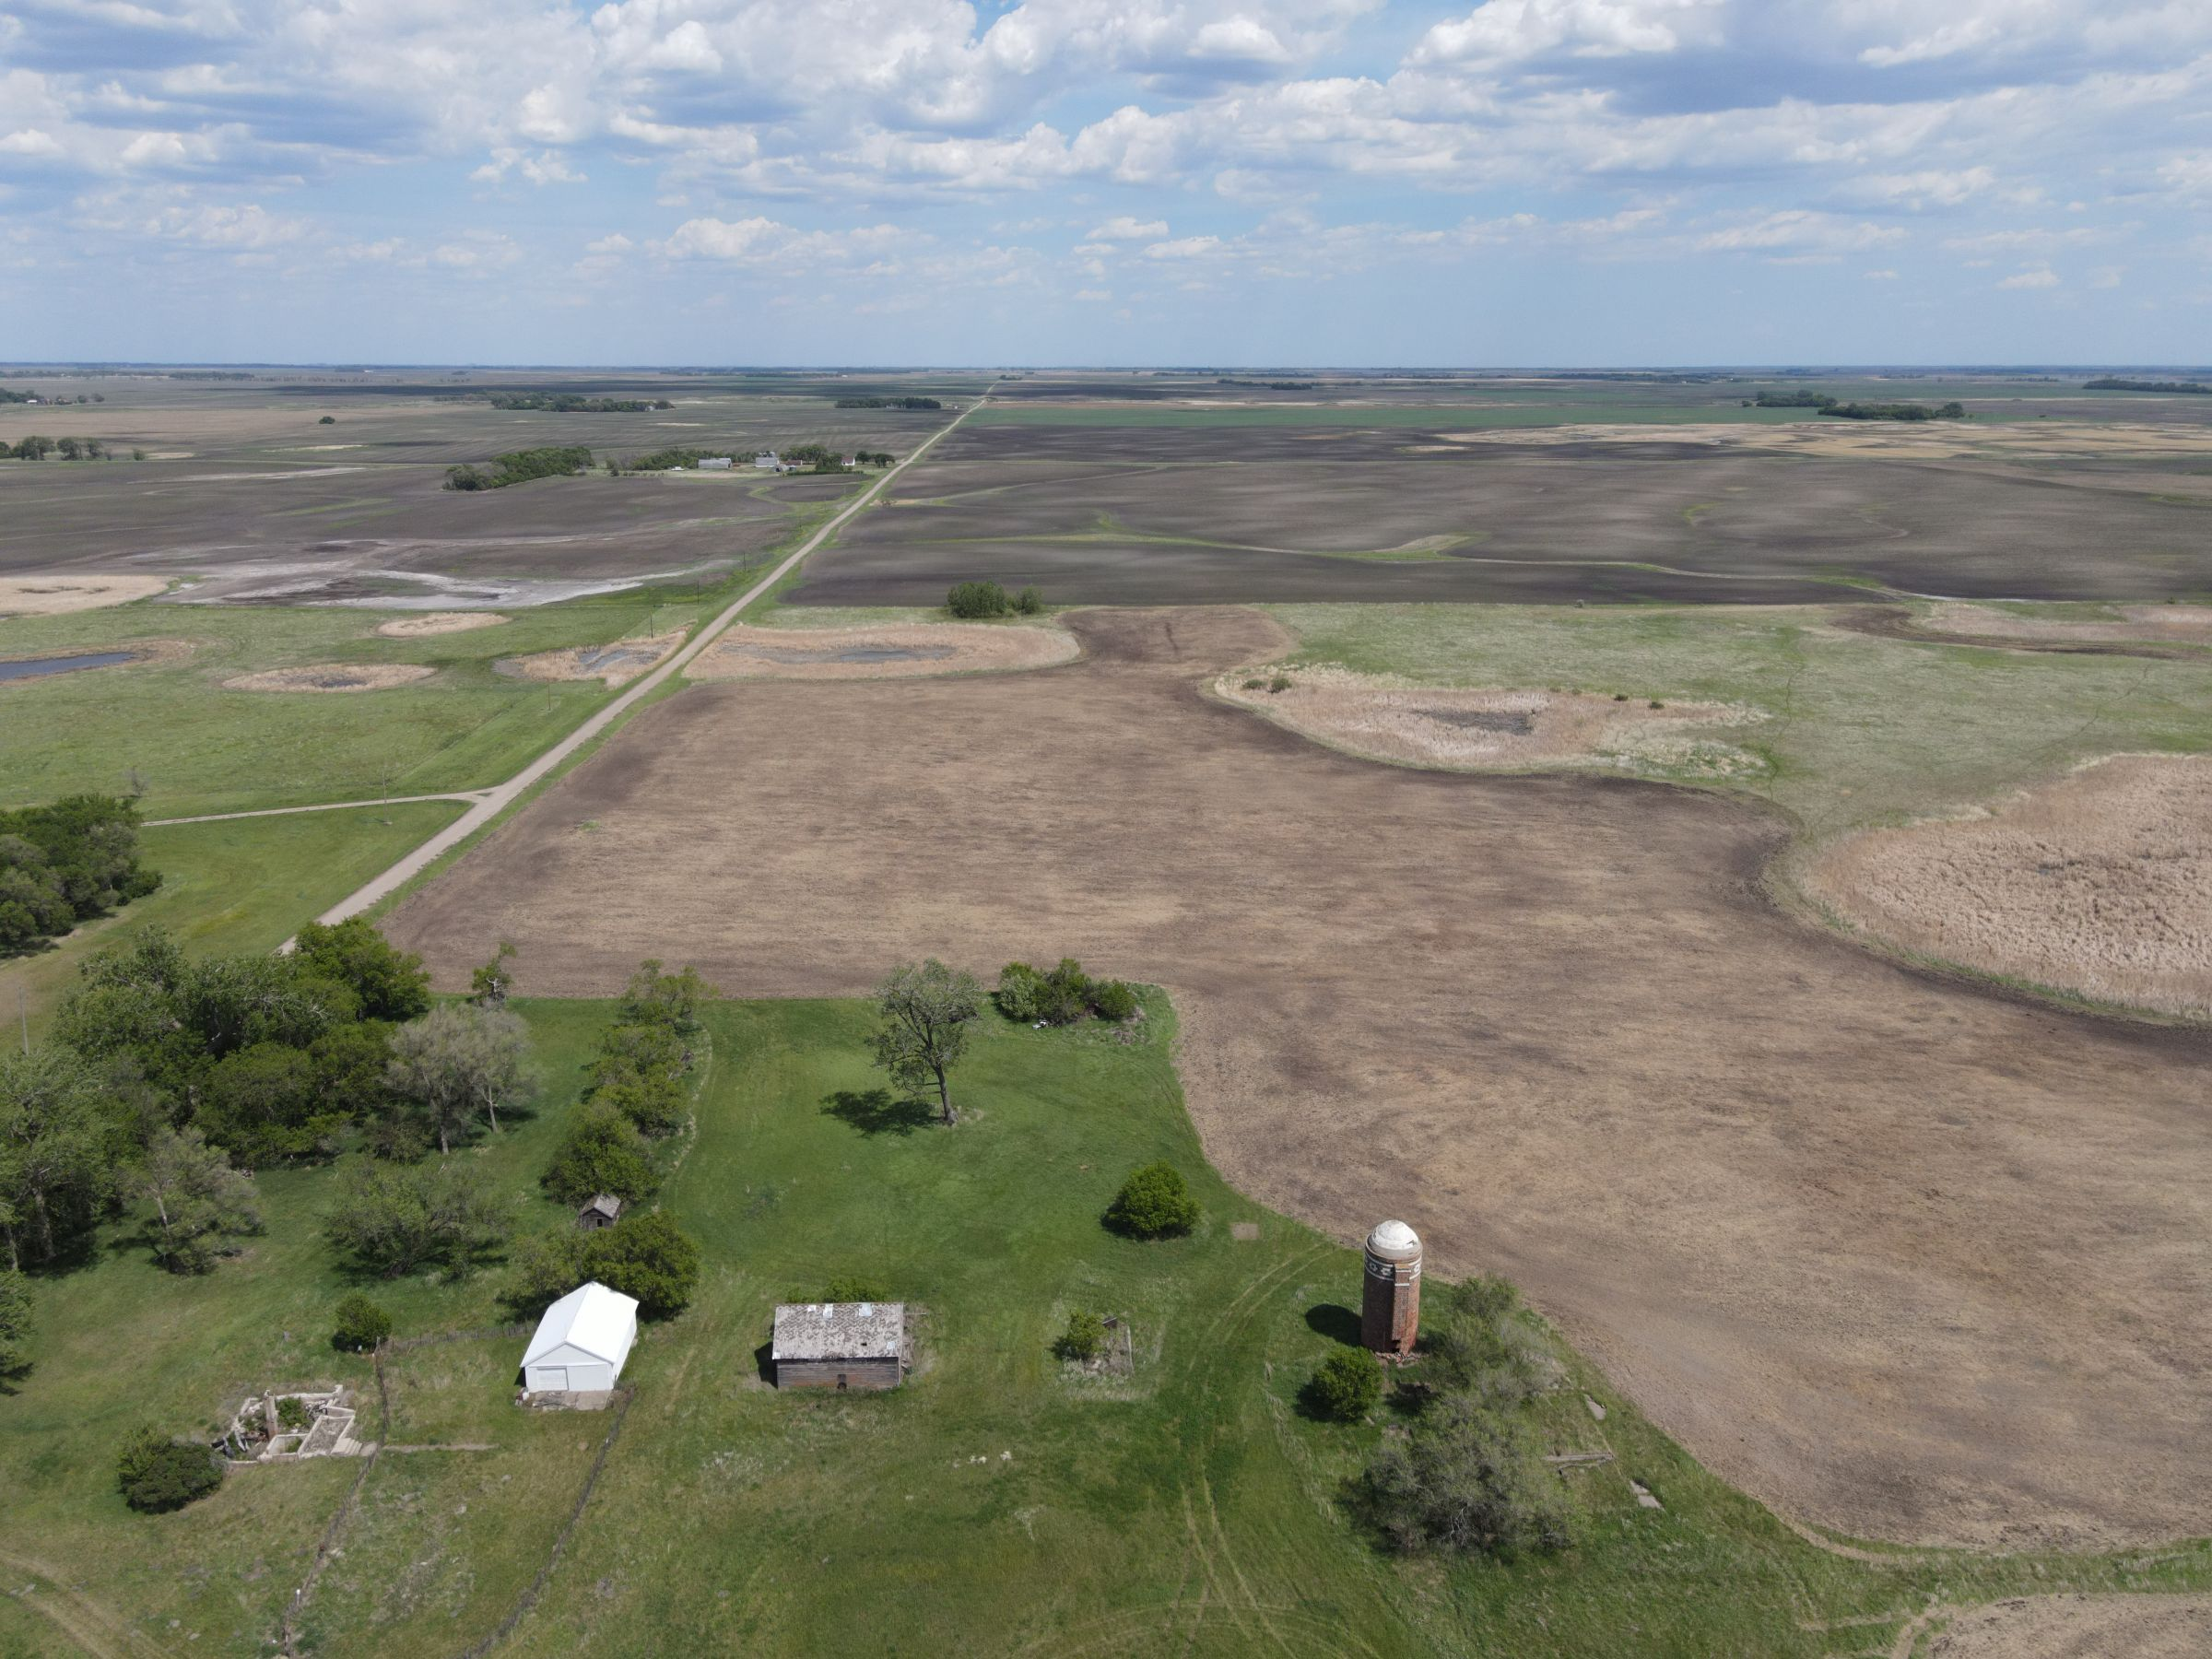 auctions-cass-county-north-dakota-320-acres-listing-number-15590-0-2021-06-22-191030.JPG